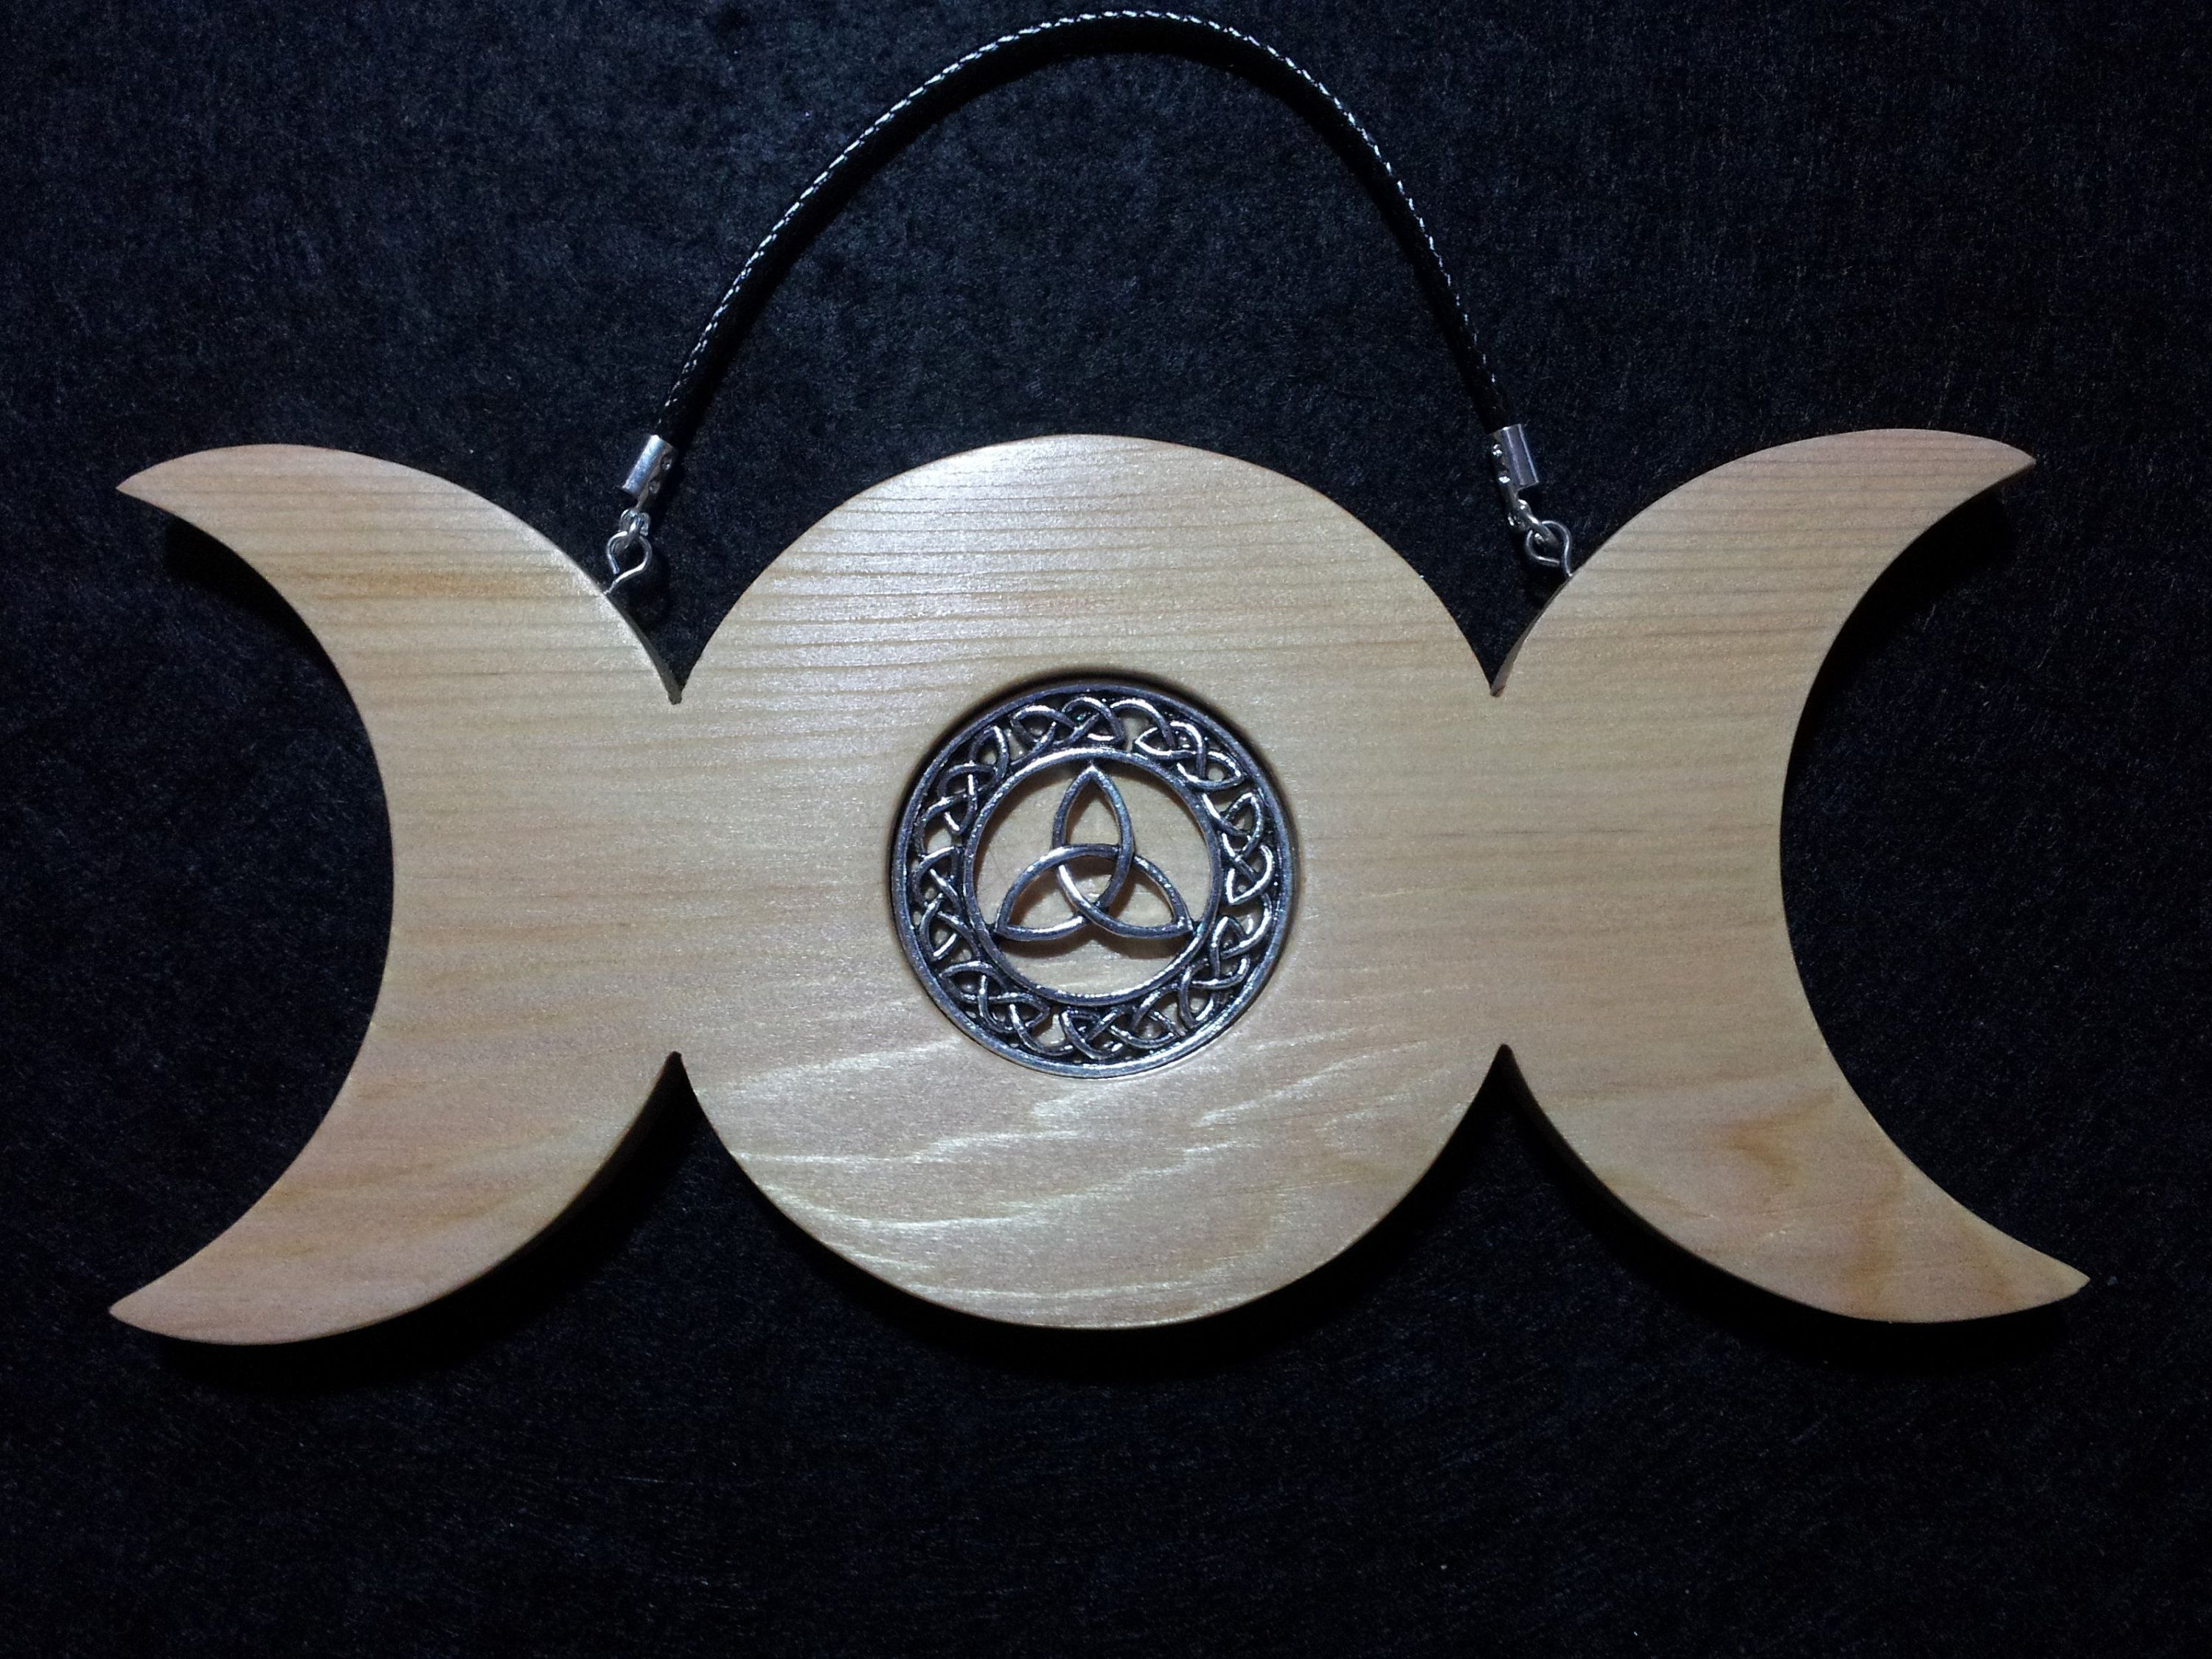 Triple Moon Triquetra Wall Hanging made from Cedar, wiccan decor,Trinity Knot,Spiritual,Pagan,Wiccan,Celtic,Goddess Symbolism,Door Hanging #wiccandecor Triple Moon Triquetra Wall Hanging made from Cedar, wiccan decor,Trinity Knot,Spiritual,Pagan,Wiccan,Celtic,Goddess Symbolism,Door Hanging #wiccandecor Triple Moon Triquetra Wall Hanging made from Cedar, wiccan decor,Trinity Knot,Spiritual,Pagan,Wiccan,Celtic,Goddess Symbolism,Door Hanging #wiccandecor Triple Moon Triquetra Wall Hanging made from #wiccandecor